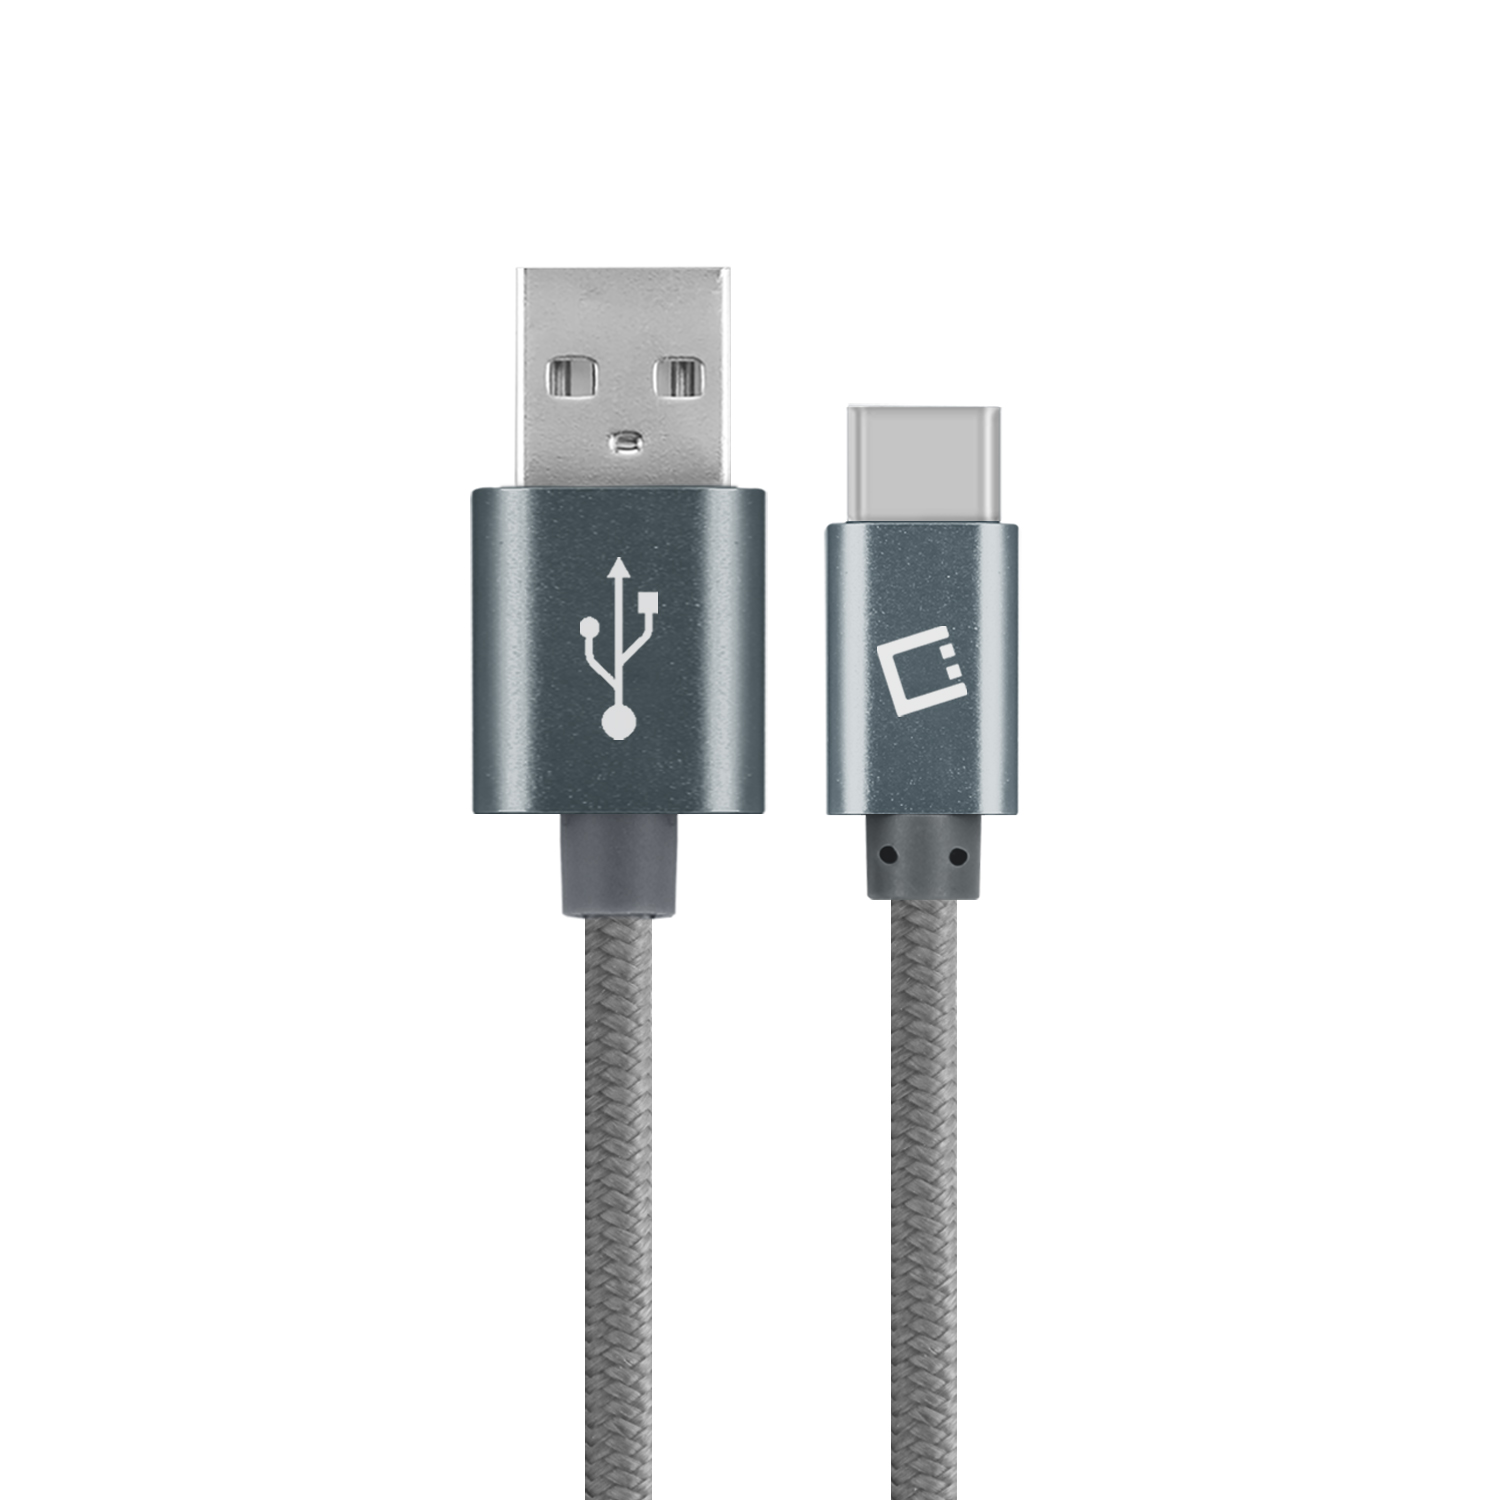 Huawei P9 USB Type-C To Type-A Braided Data Power Cable Grey 6ft Braided